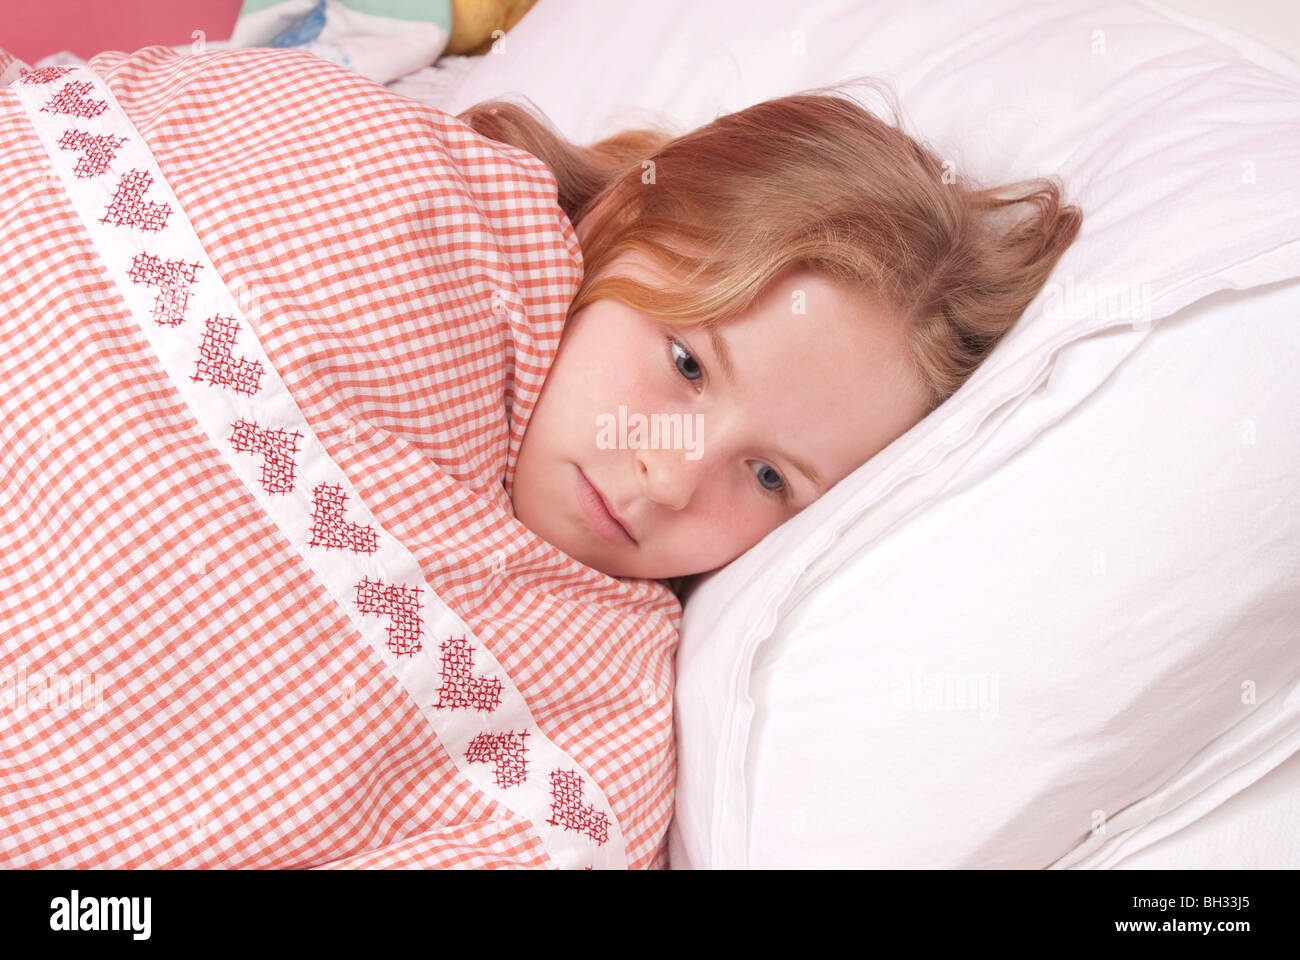 Young girl awakes in her bed at night UK Stock Photo